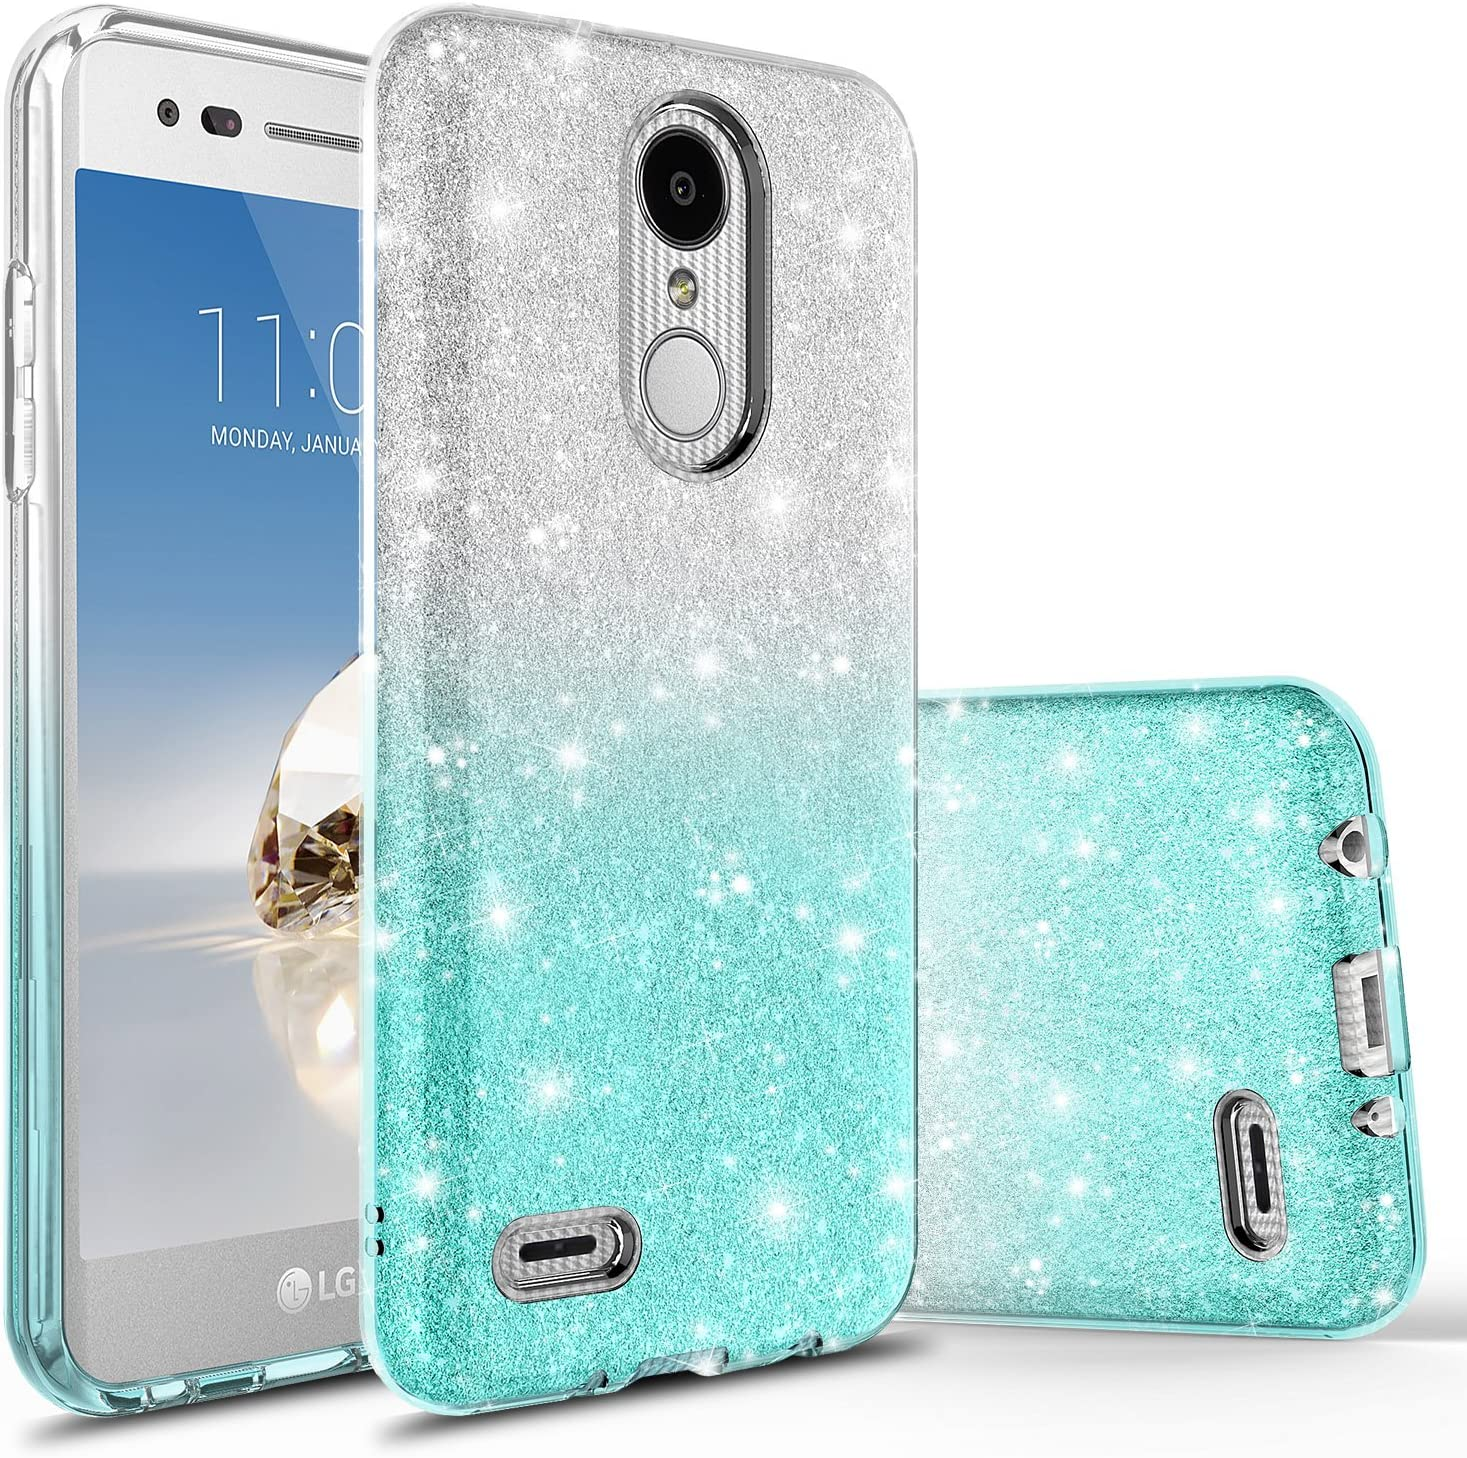 LG Premier Pro LTE Case, LG K30 Case, LG K10 2018 Case With Tempered Glass Screen Protector, Rosebono Fashinon Slim Shinning Sparkle Bling Glitter Sparkle Protective Case for LG K30 (Silver / Teal)